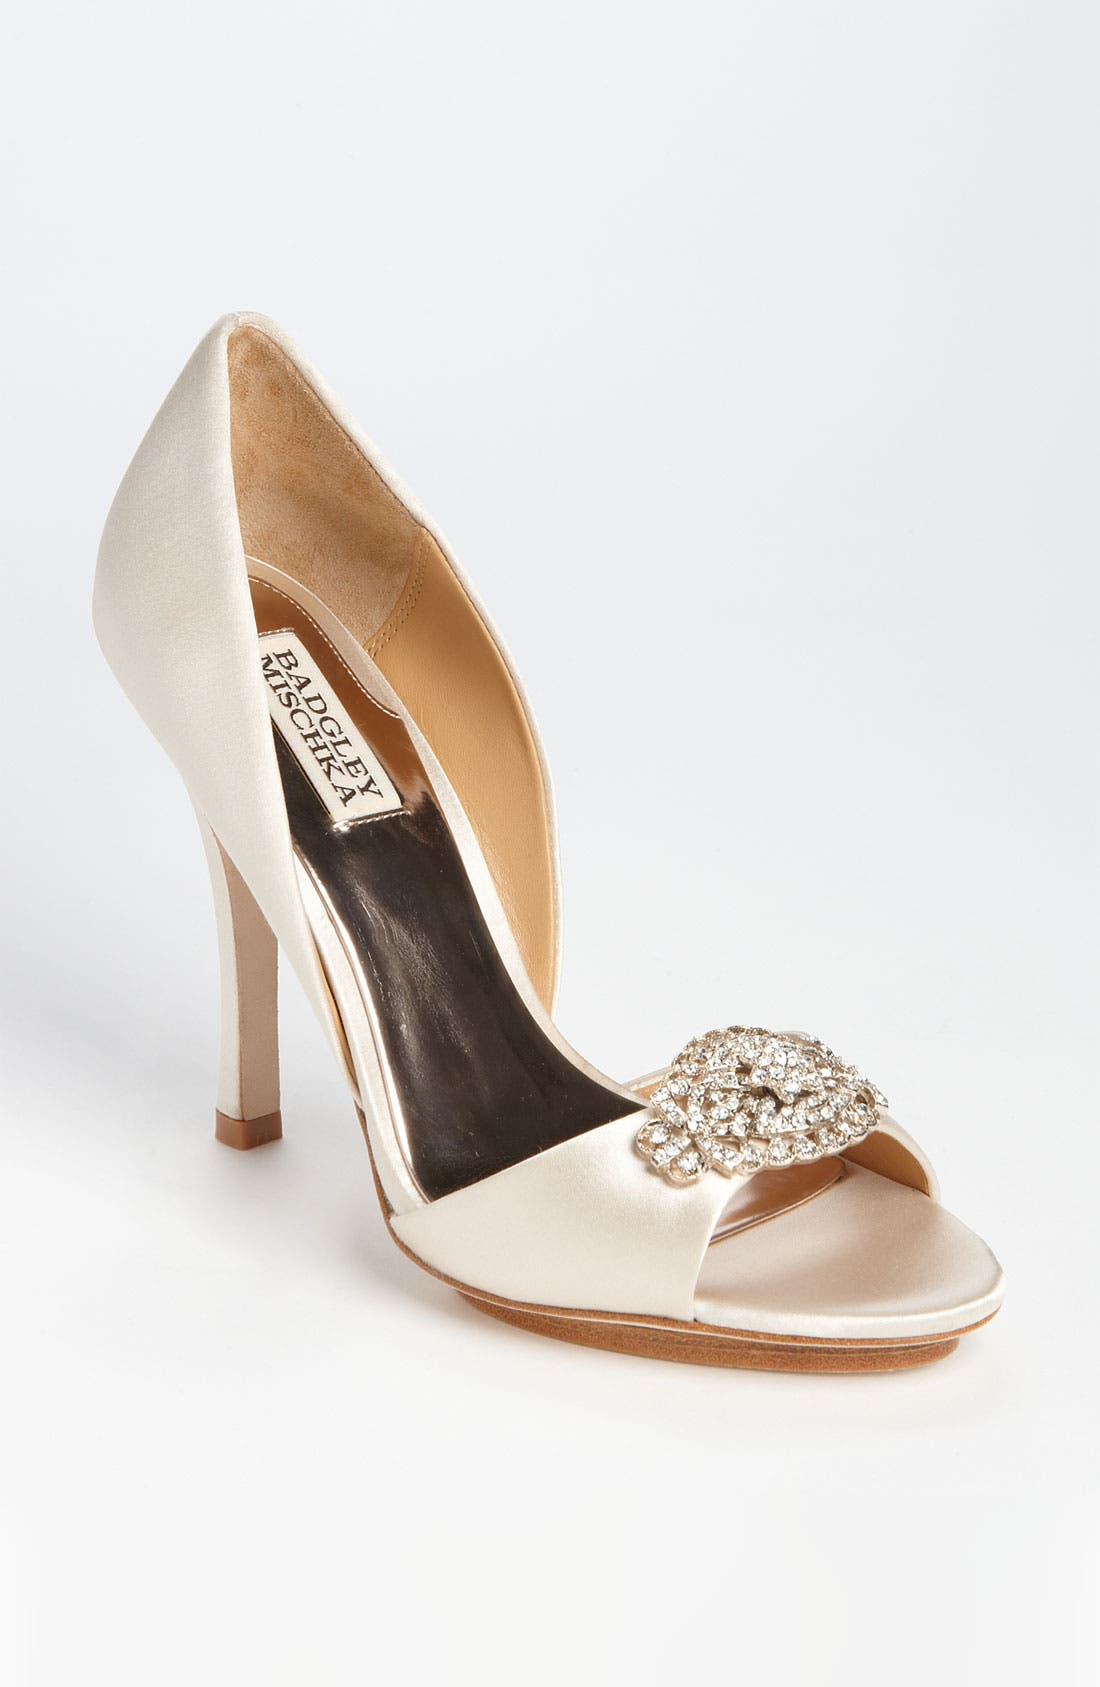 Main Image - Badgley Mischka 'Gia' Pump